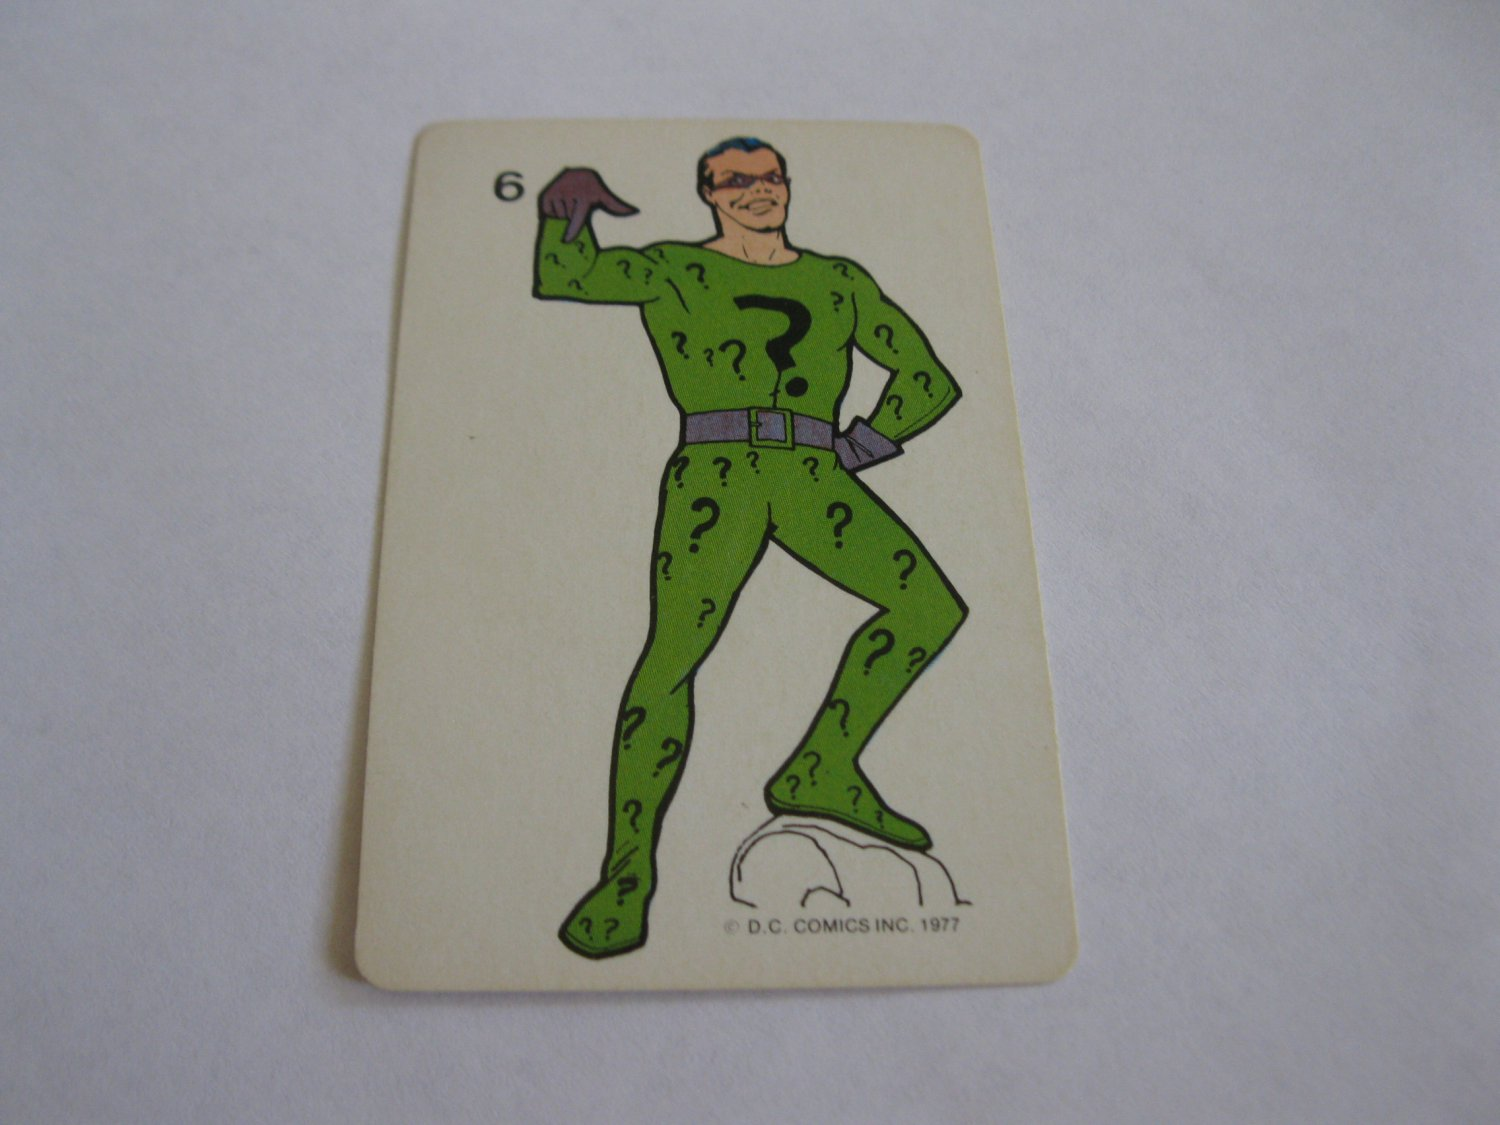 1977 DC Comics Game Card #6: The Riddler